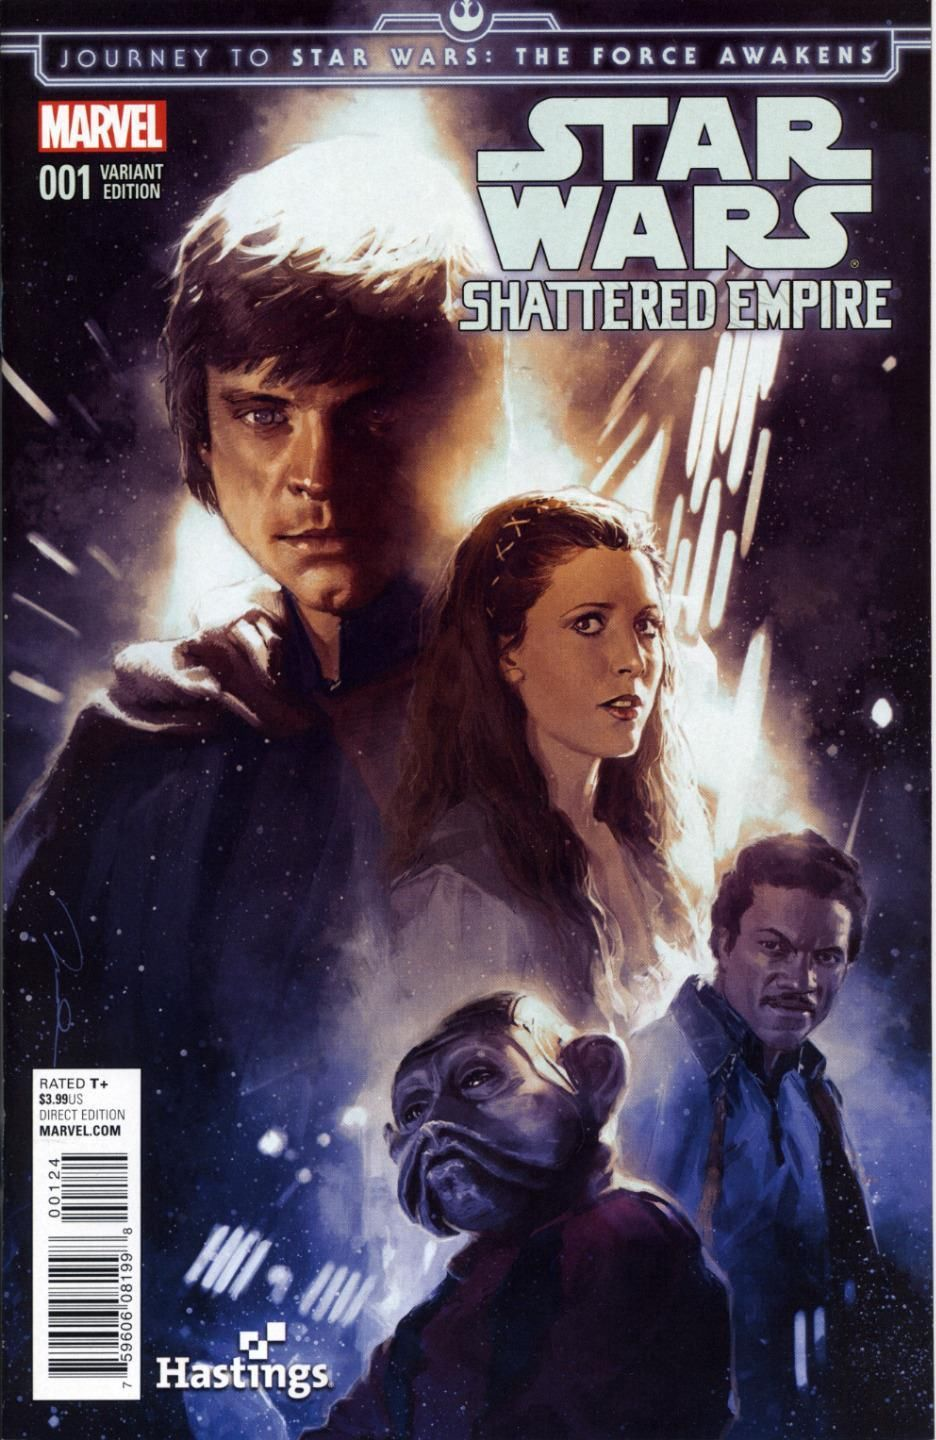 Shattered Empire #1 (Gerald Parel Hastings Variant Cover) (09.09.2015)